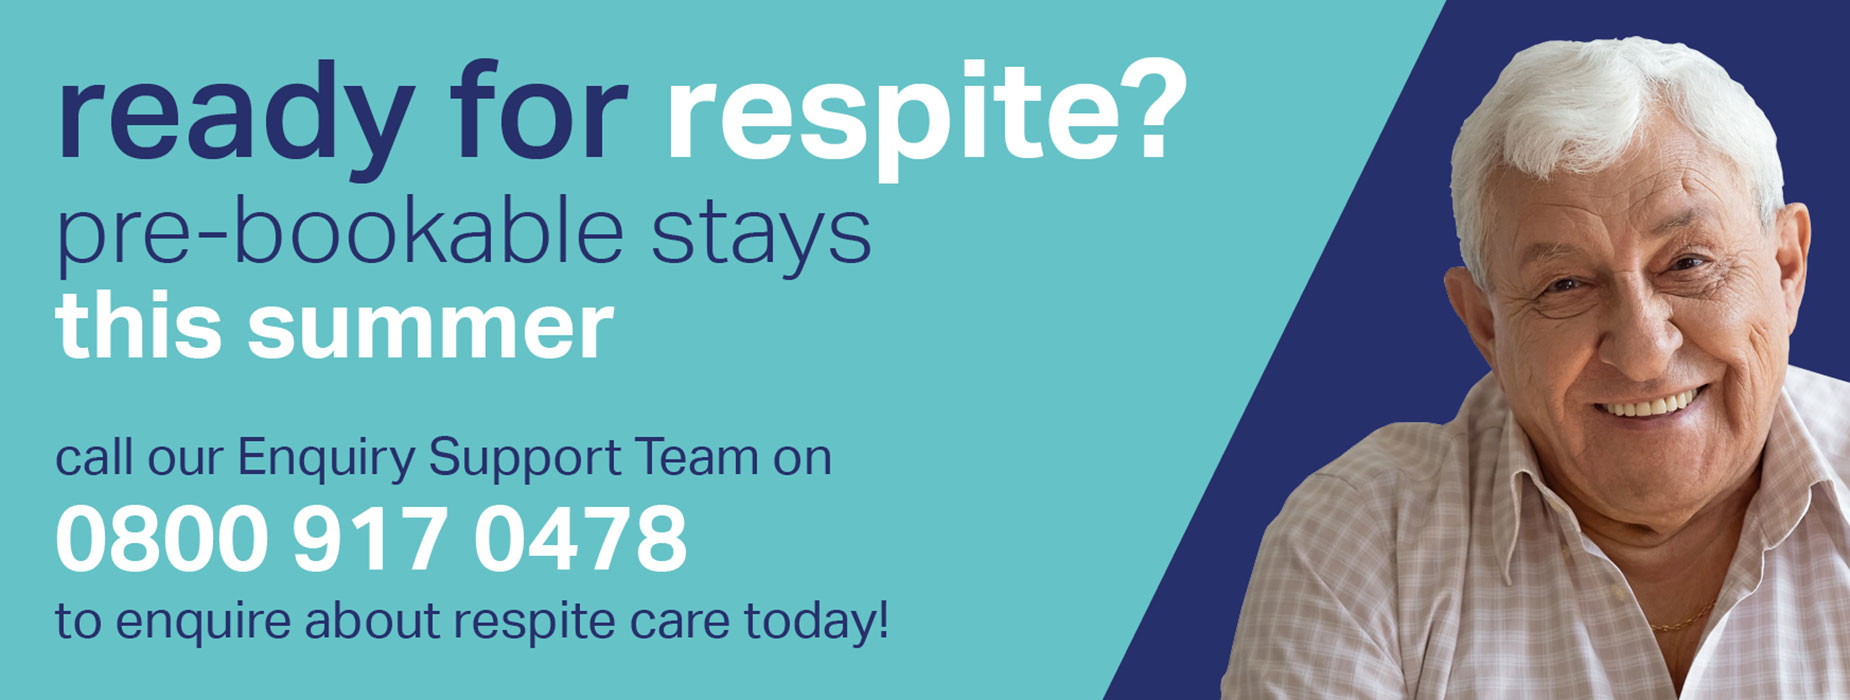 Ready For Respite? Pre-bookable stays this summer. Call our Enquiry Support Team on 0800 917 0478 to enquire about respite care today.